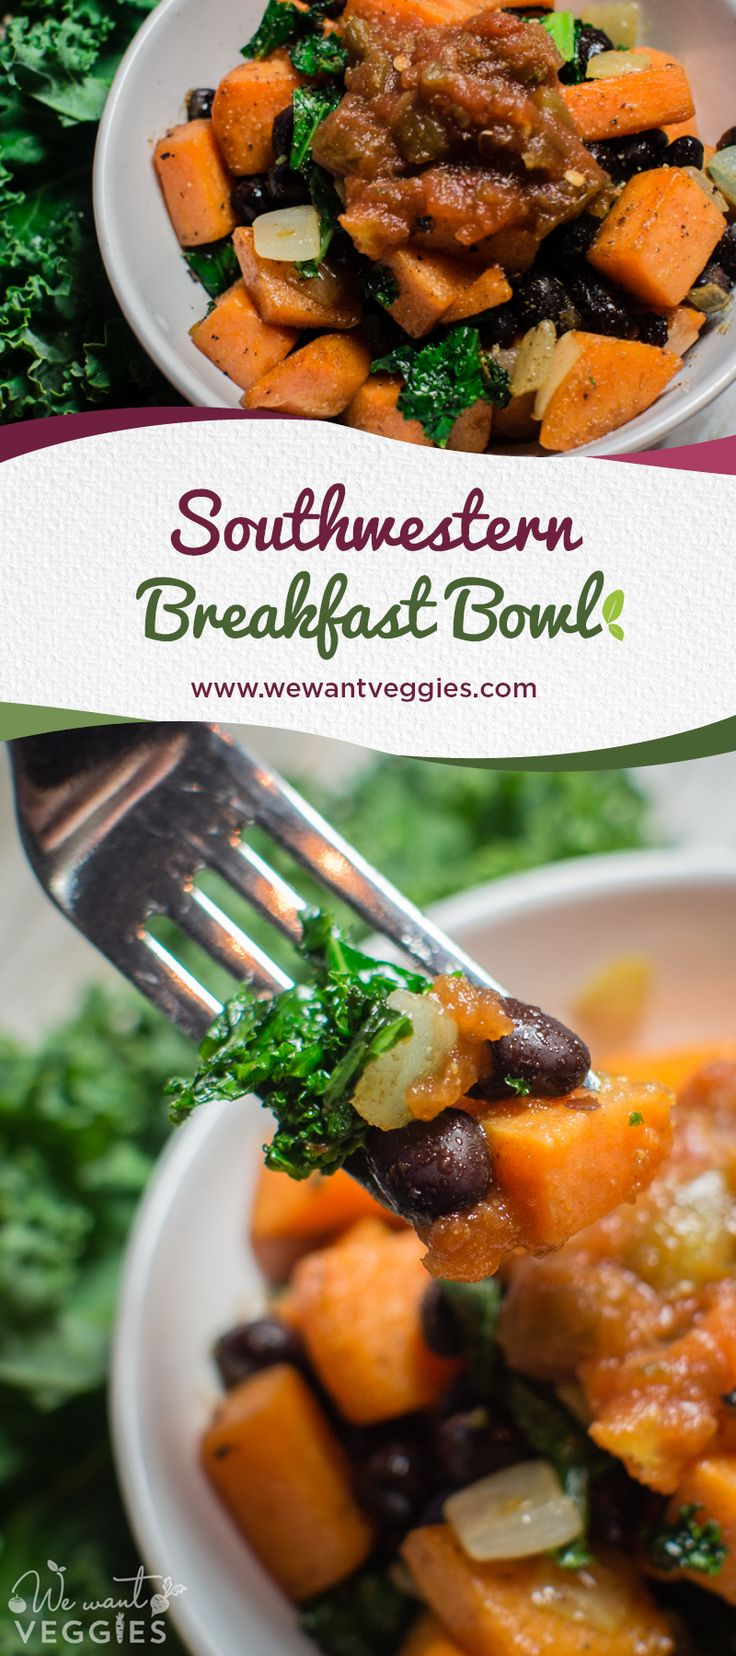 Kickstart your day with this HEALTHY & flavorful Southwestern breakfast bowl!